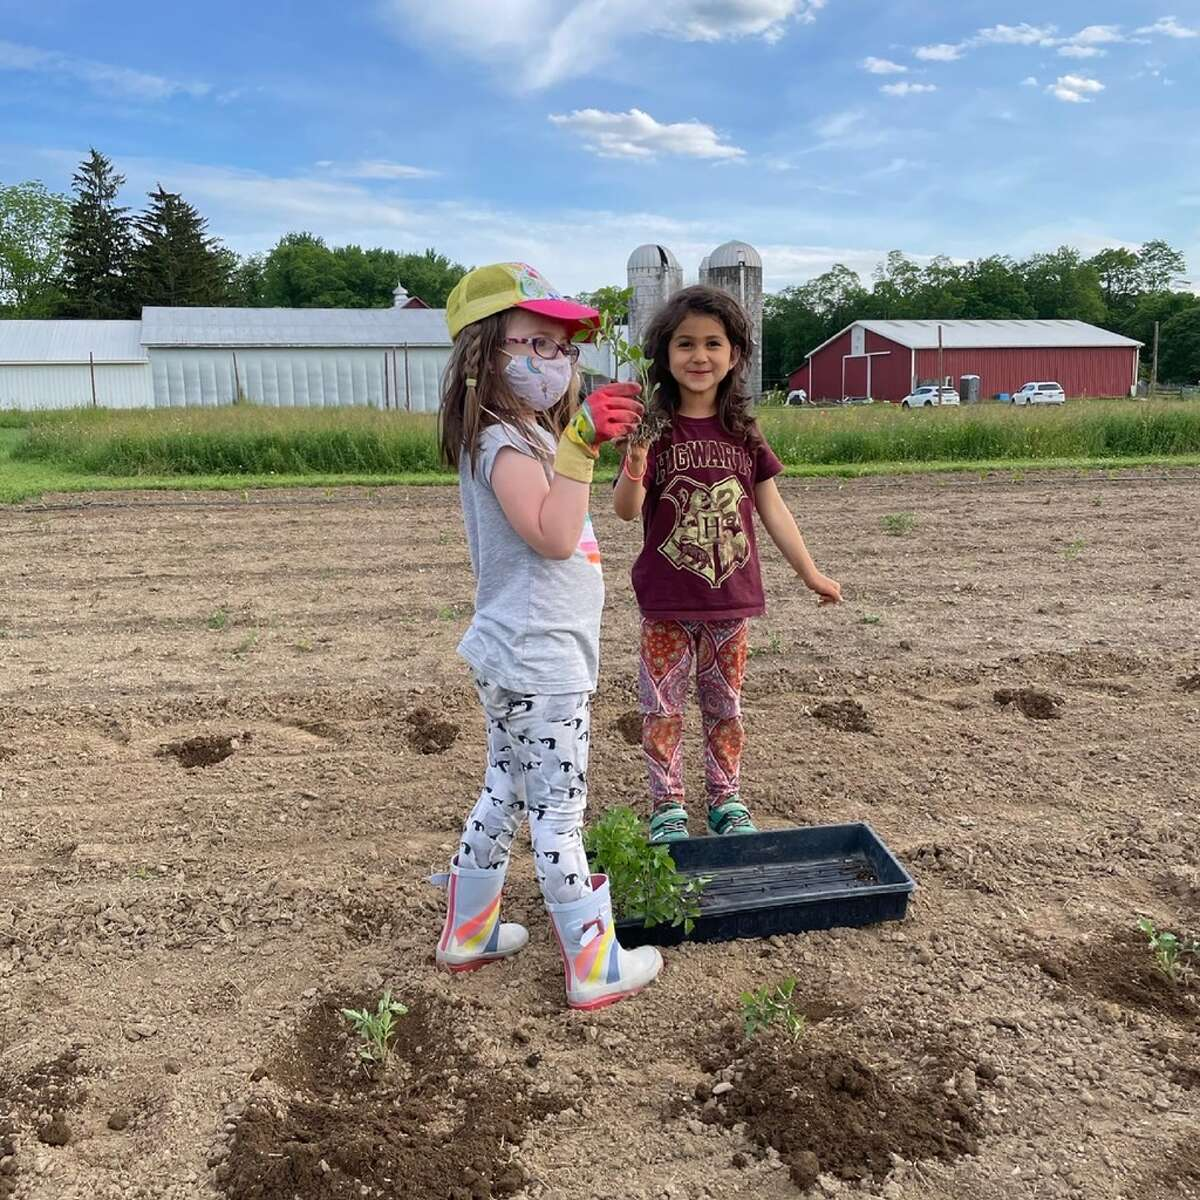 Everyone helps to plant the Four Corners Community Farm field where organic produce will grow and be donated to Red Hook Responds, the local food pantry that also supplies meals to the hungry. Here is Madeline Renee Blatt, left, and Leonora Rose Cortina, Sam Rose's daughter.